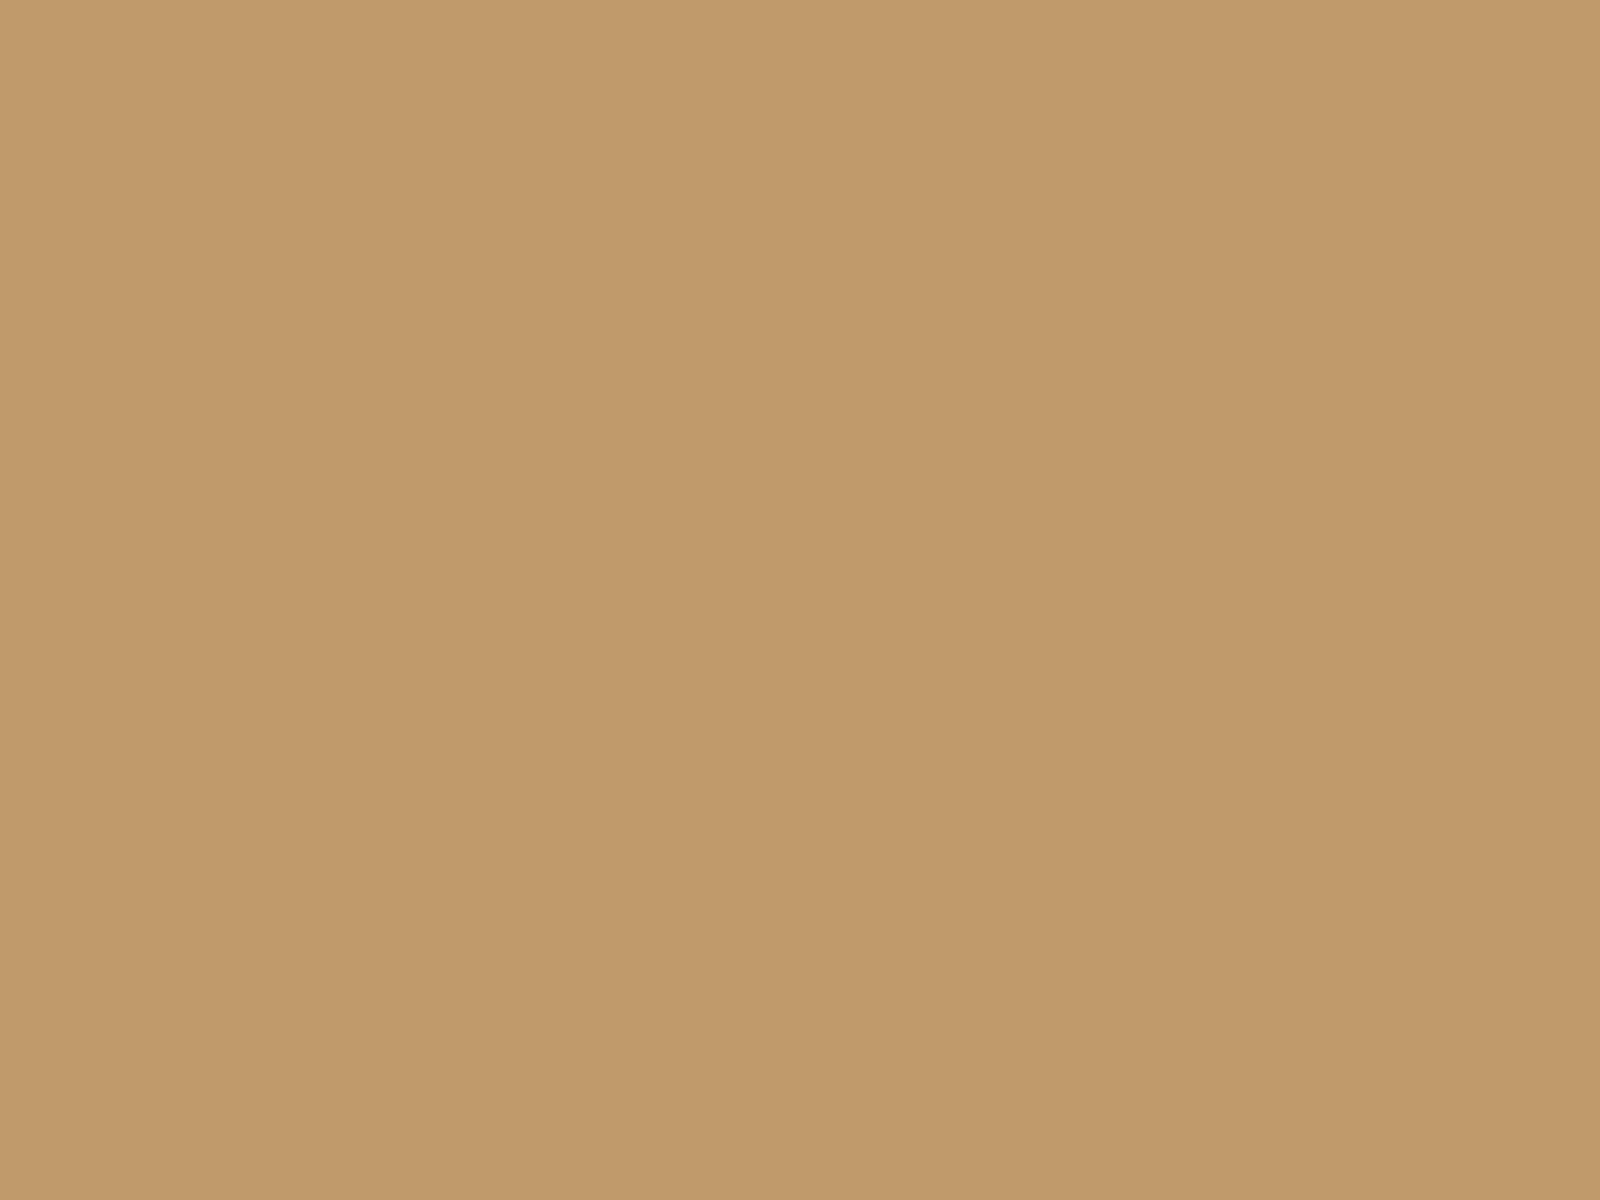 1600x1200 Camel Solid Color Background